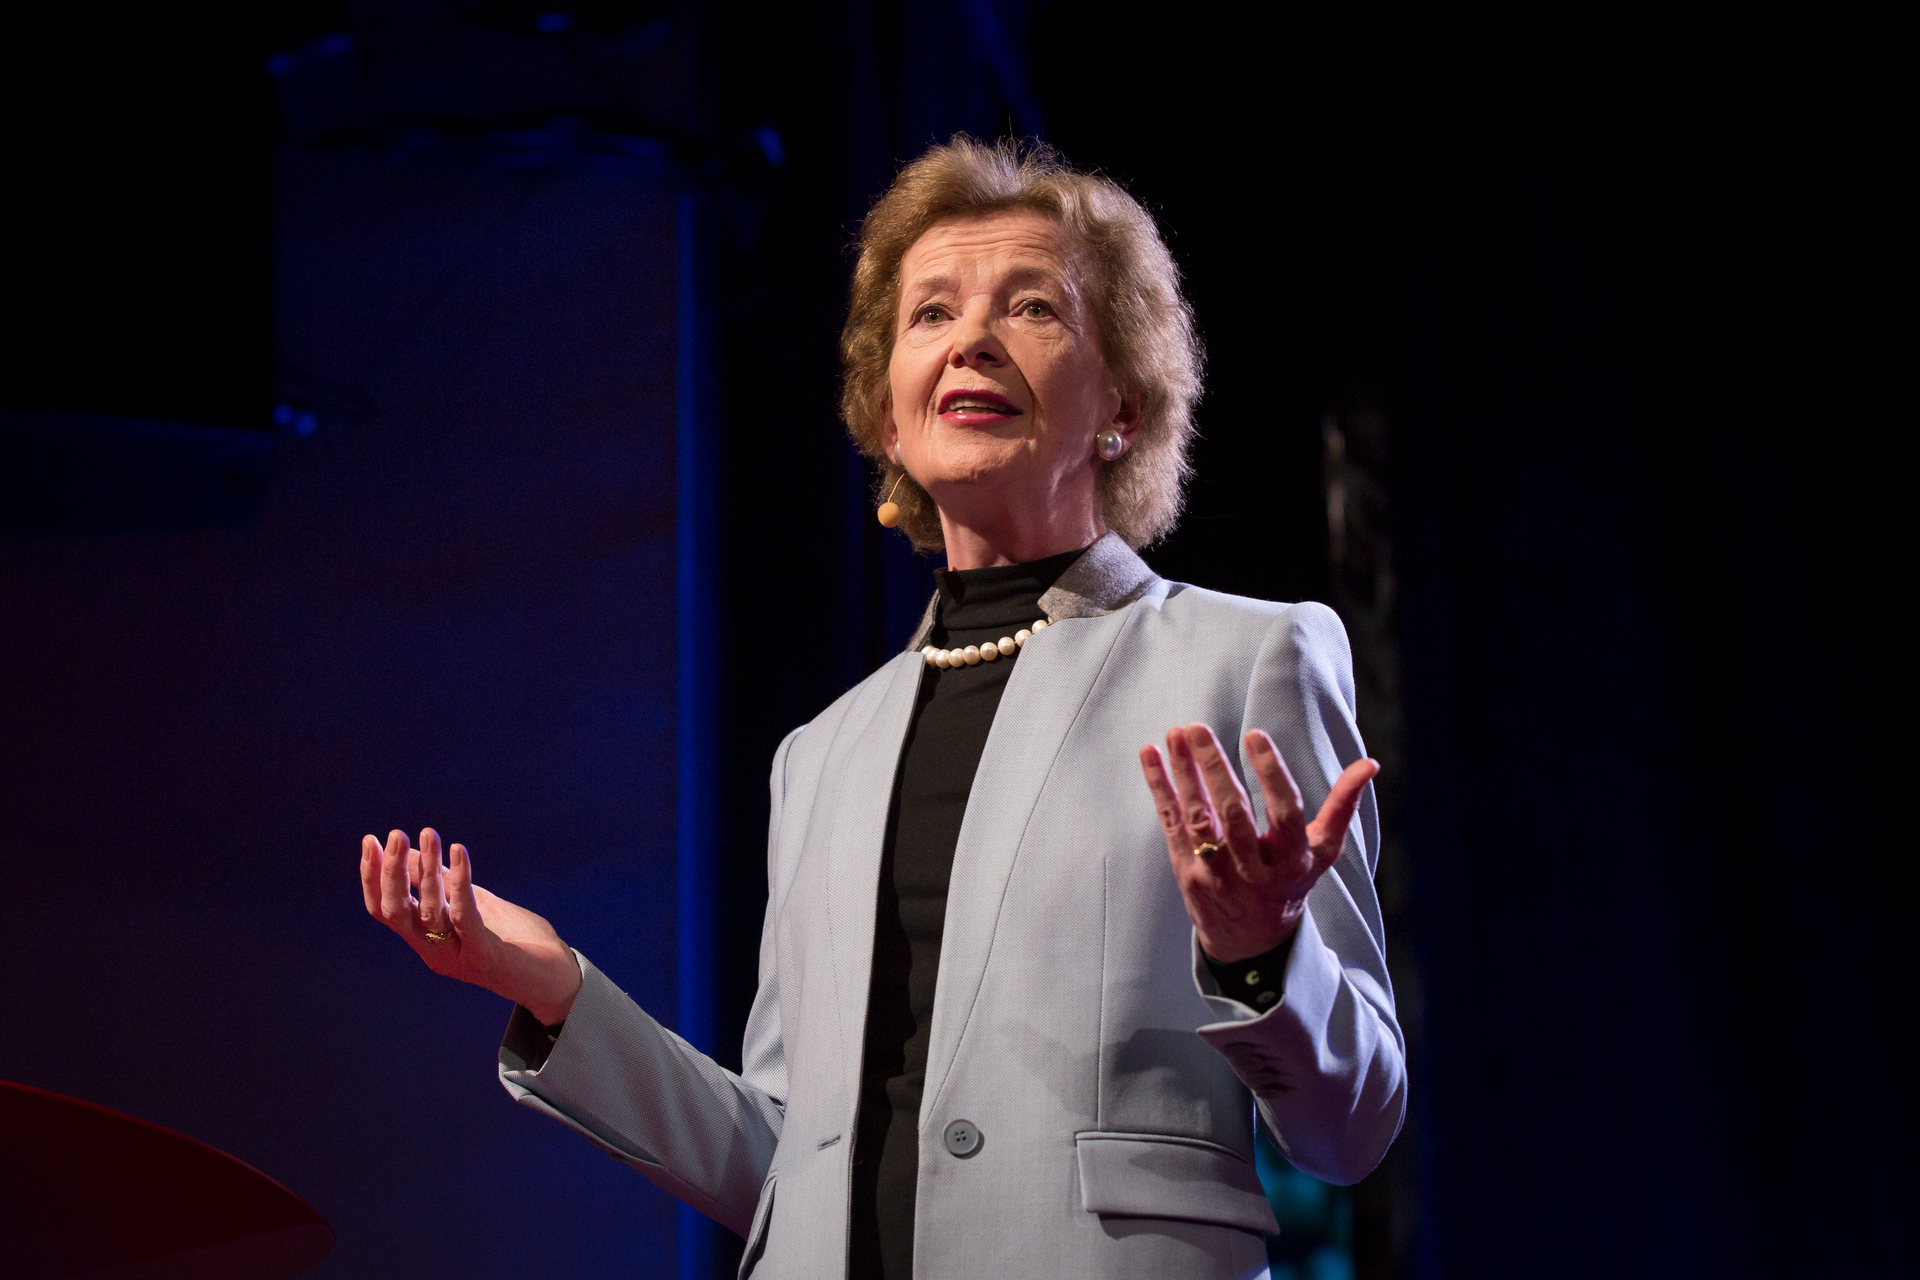 Mary Robinson speaks at TEDWomen2015 - Momentum, Session 4, May 28, 2015, Monterey Conference Center, Monterey, California, USA. Photo: Marla Aufmuth/TED